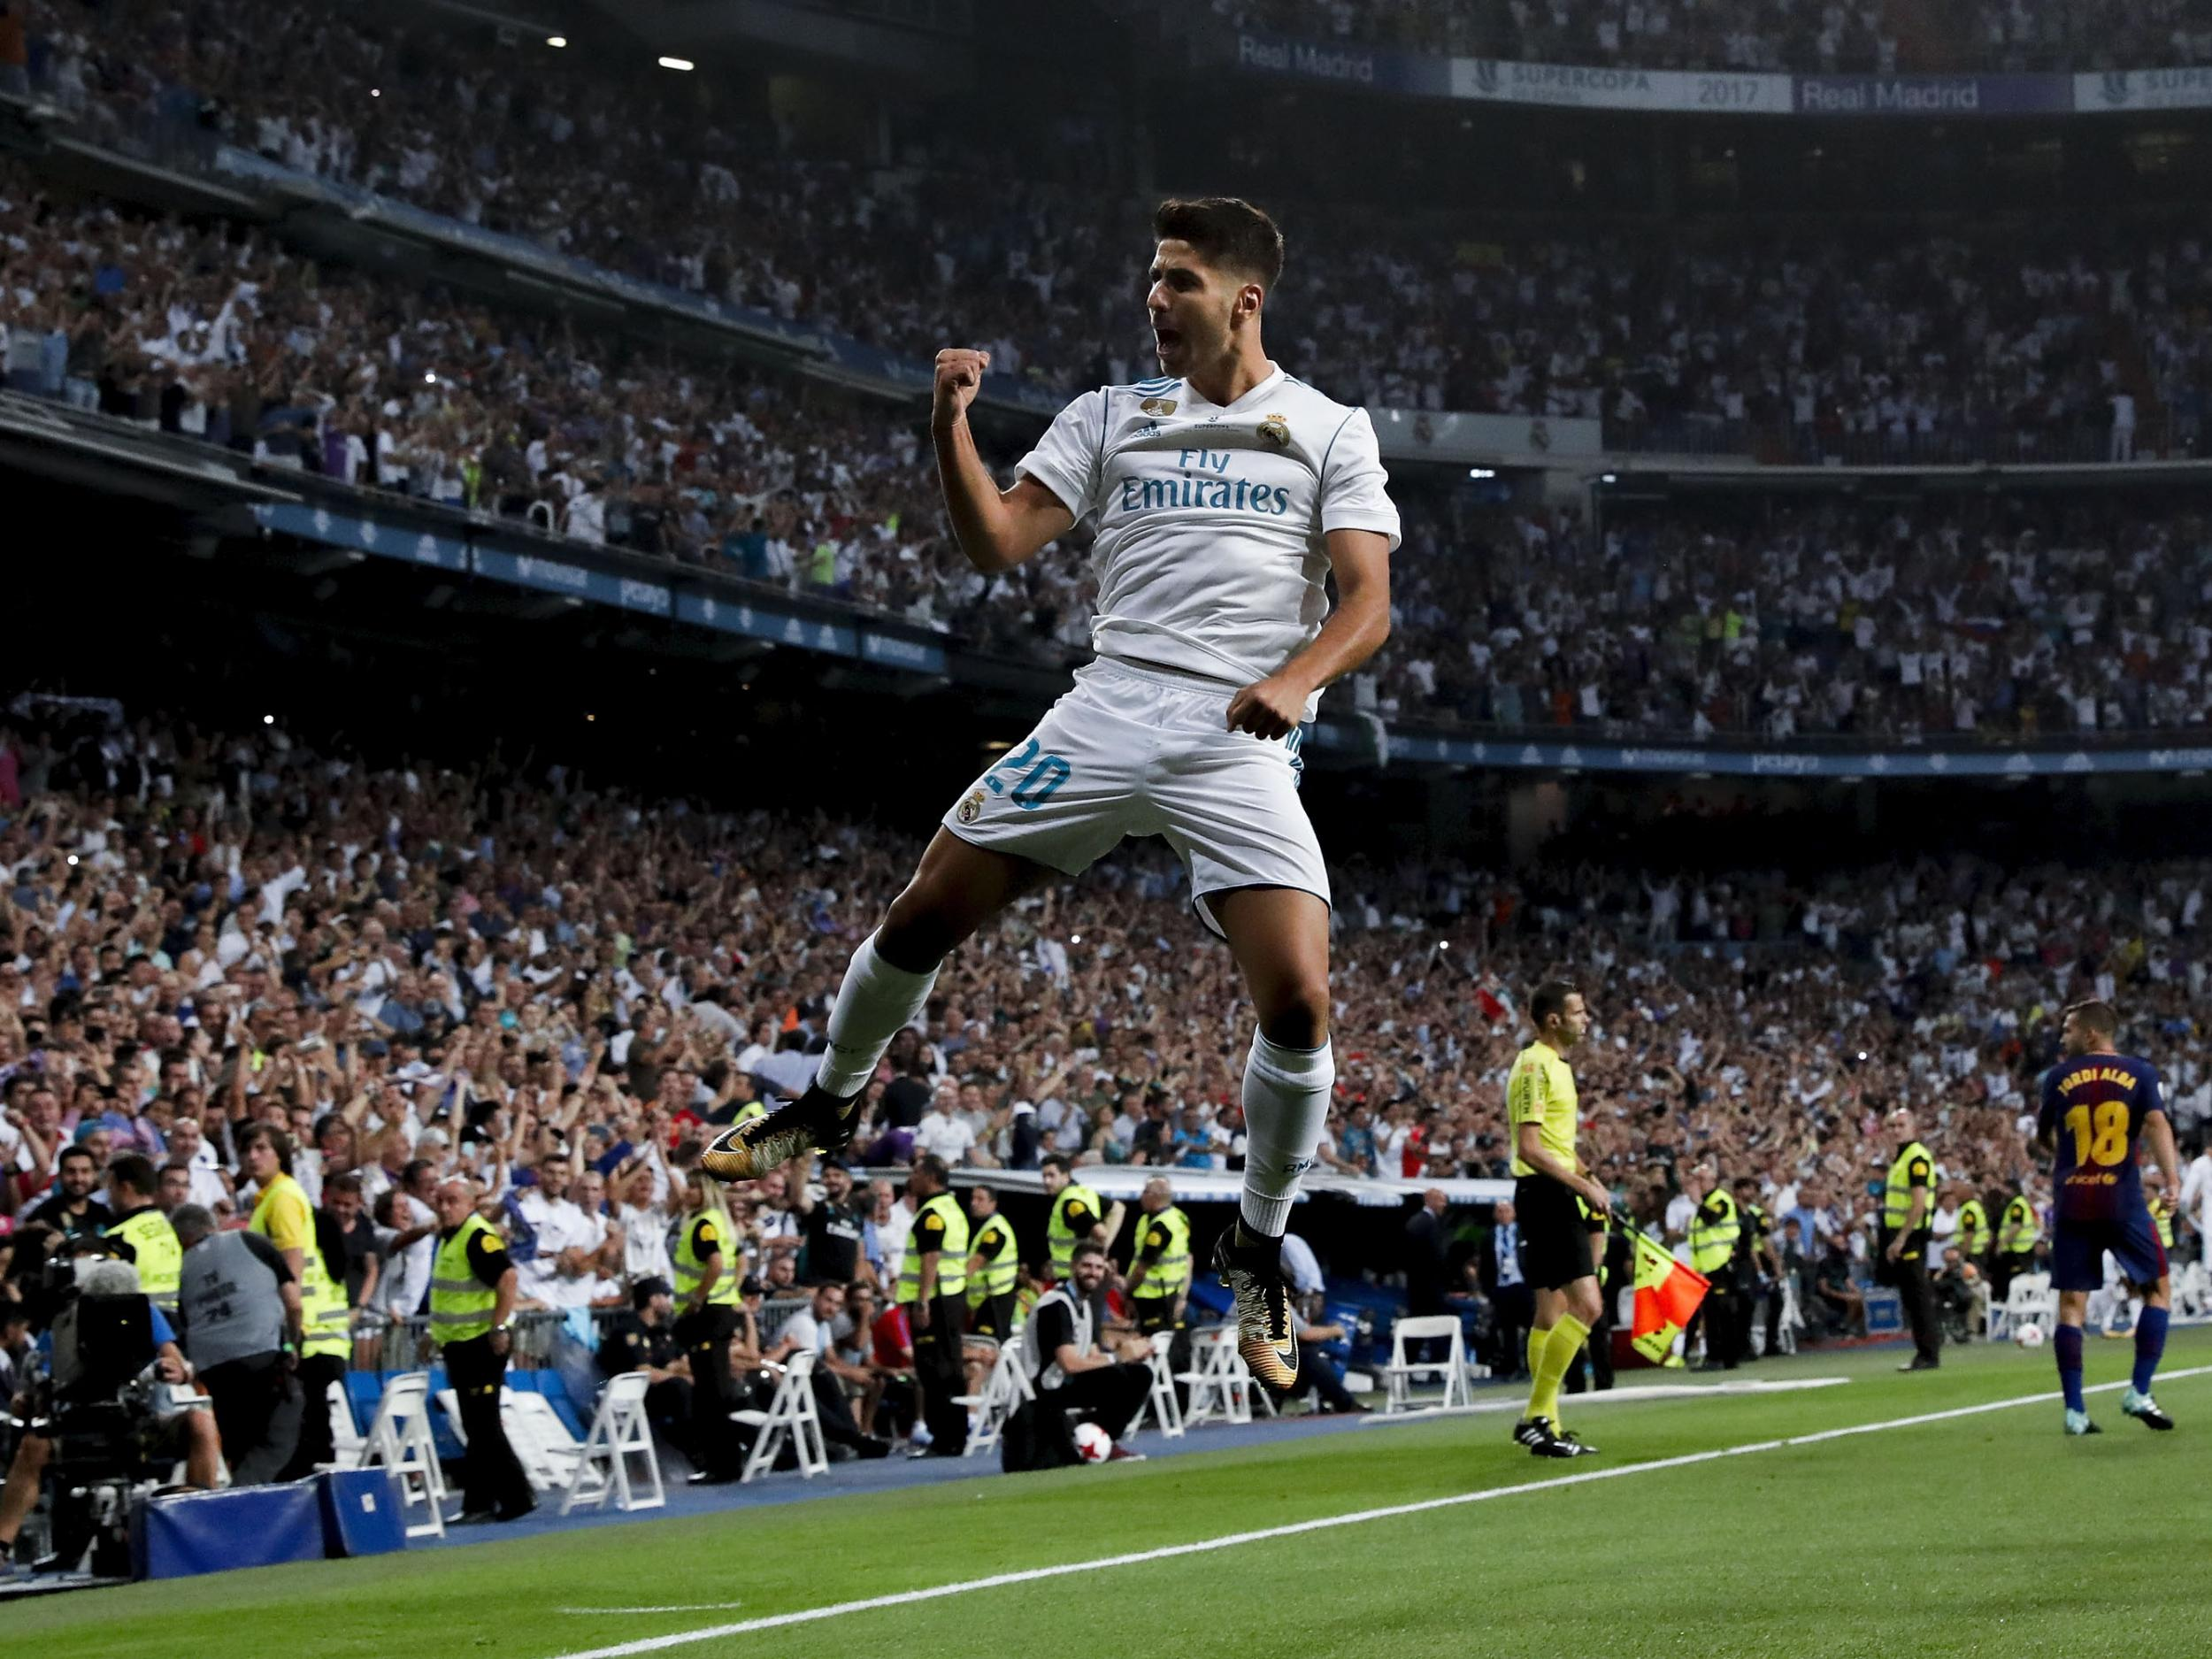 Marco Asensio: career of a young Spanish midfielder in Real Madrid and the Spanish national team 80